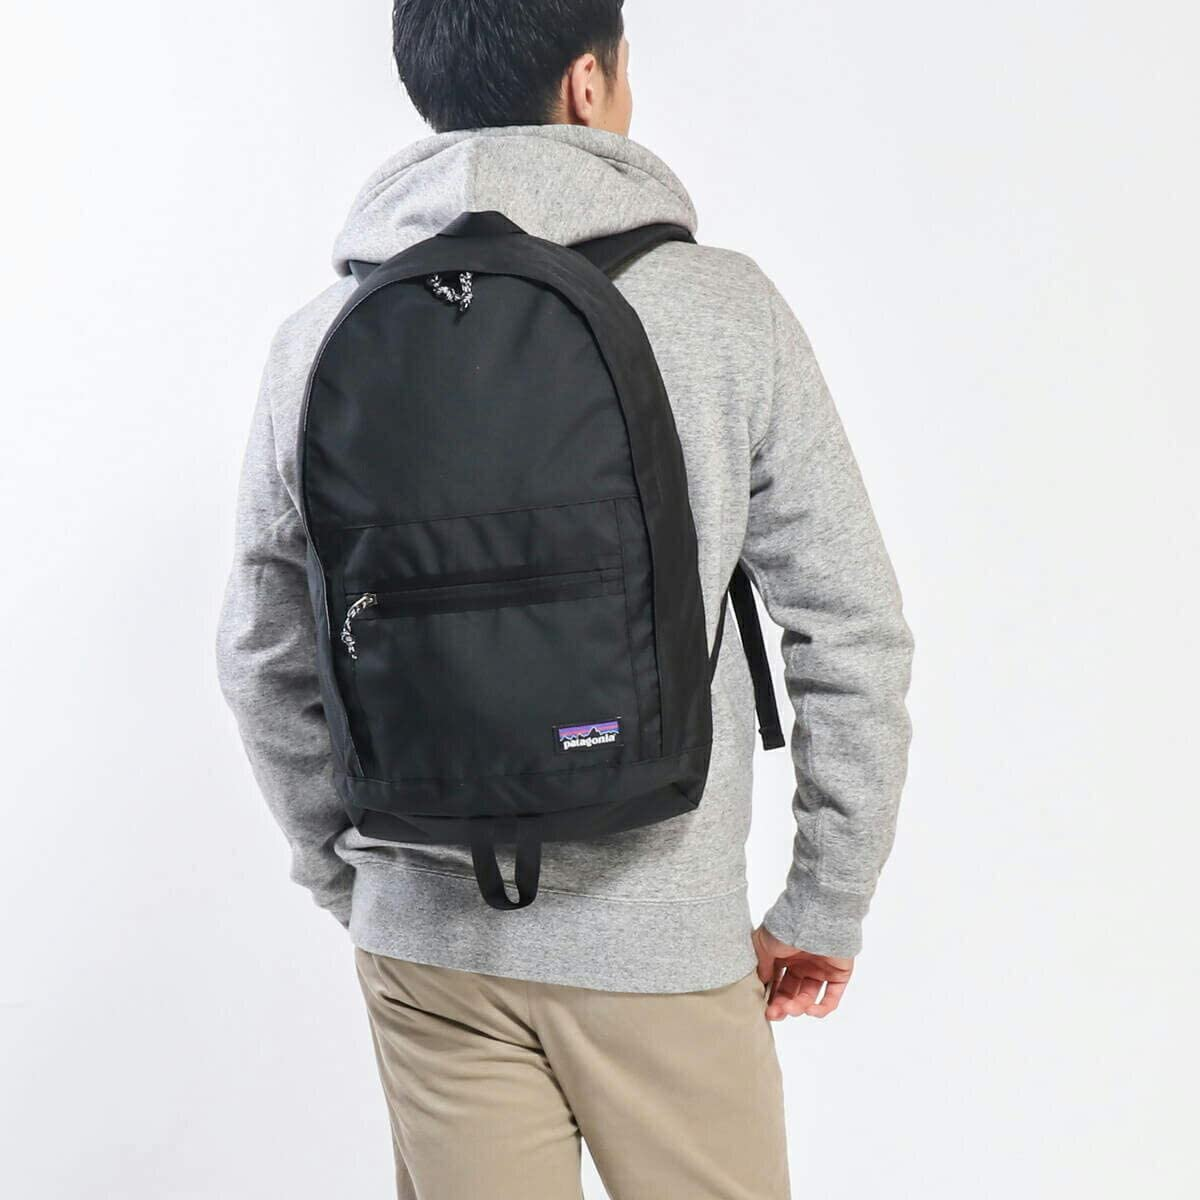 Patagonia Day Packs Unisex Backpack Adult